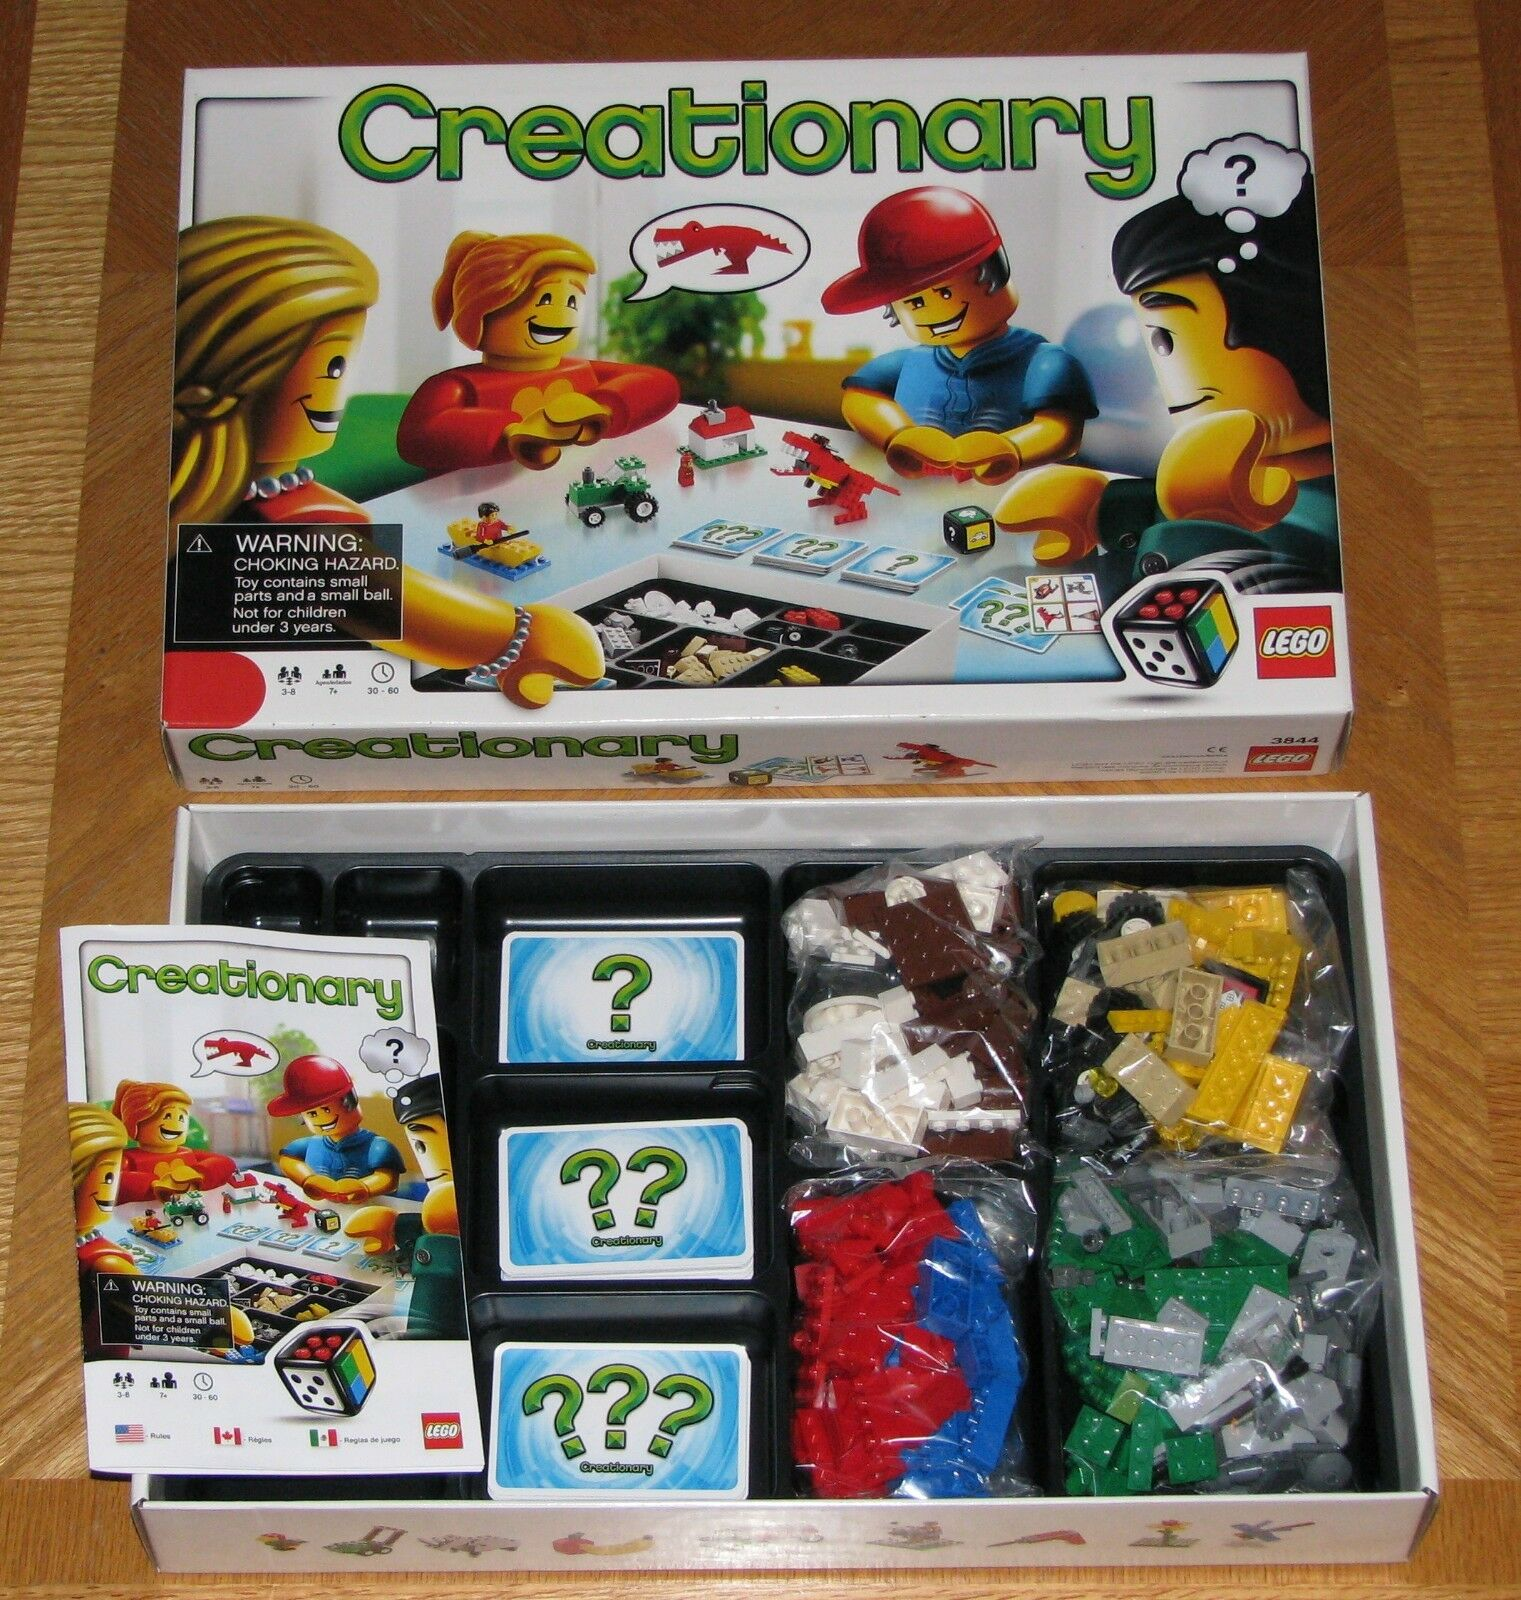 2010 Lego Creationary Board Game - Complete & Nice